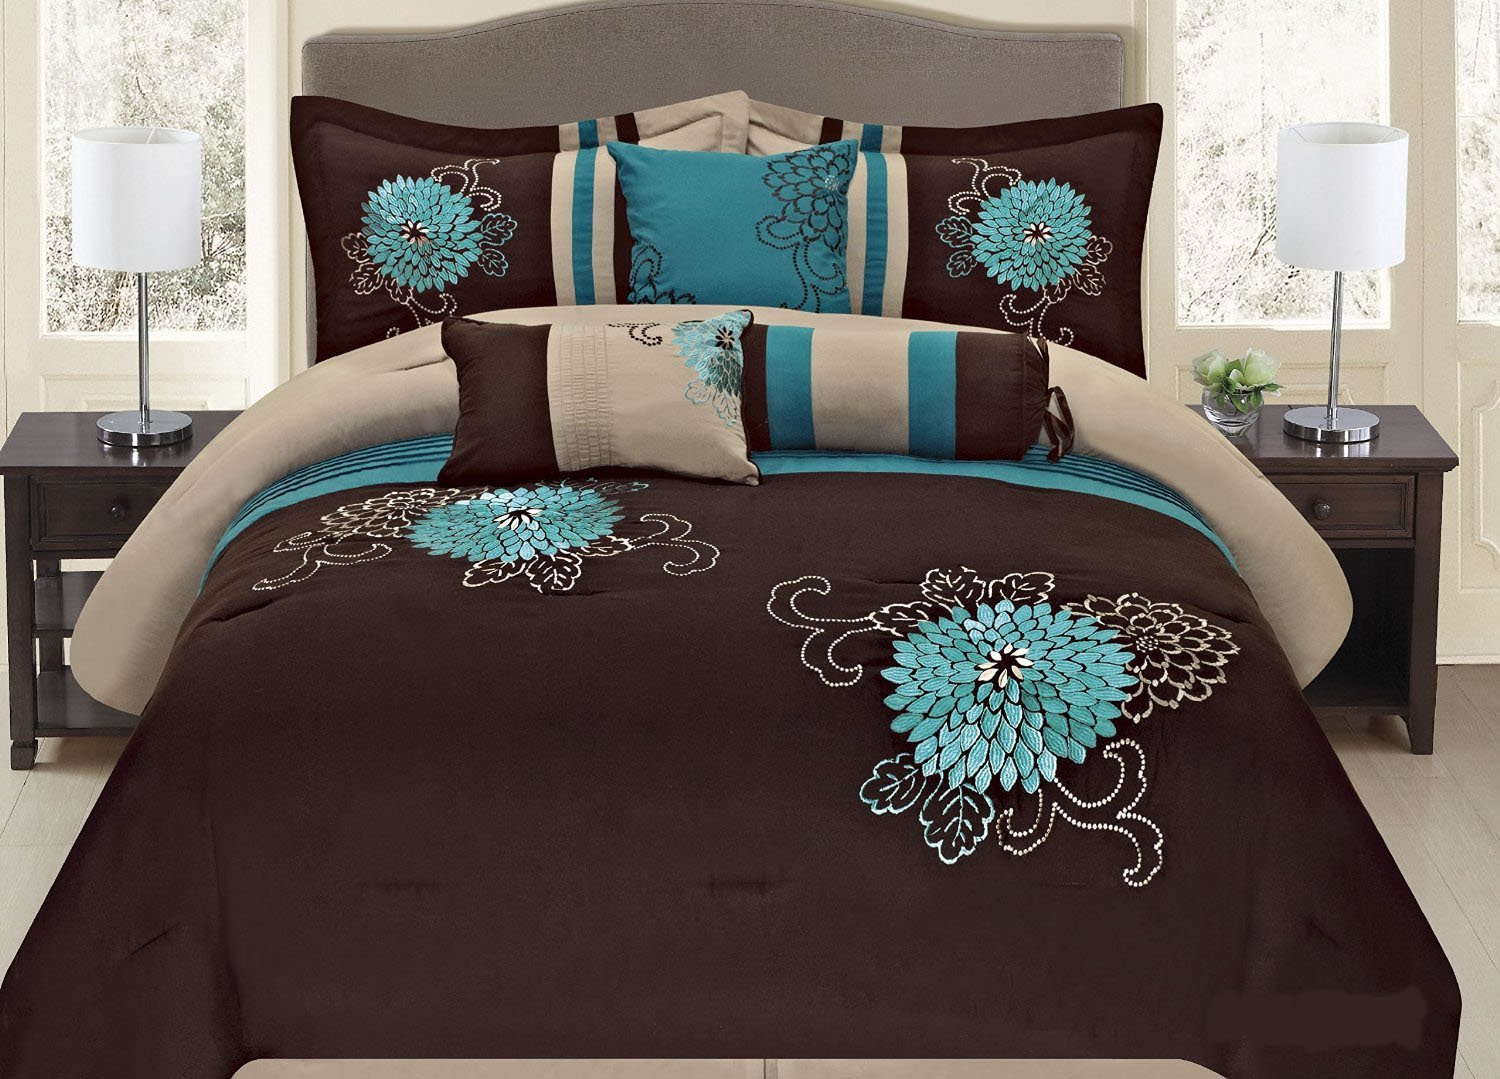 Fancy Collection 7-pc Embroidery Bedding Brown Turquoise Comforter Set King